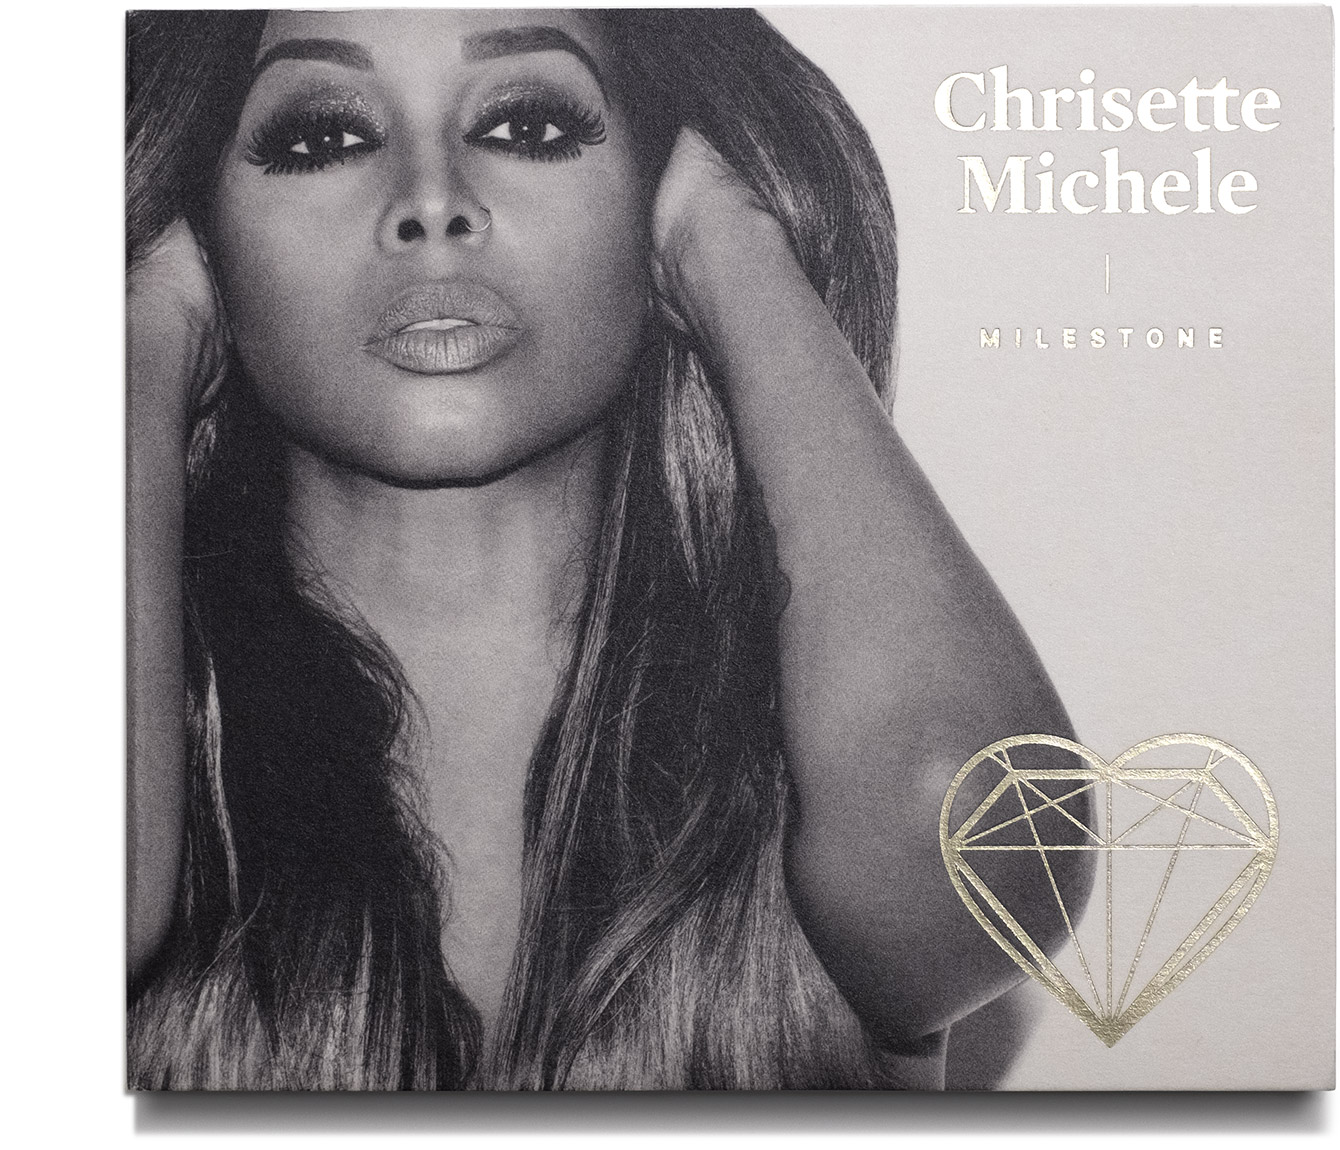 Andy Sheffield - Music - Chrisette Michele